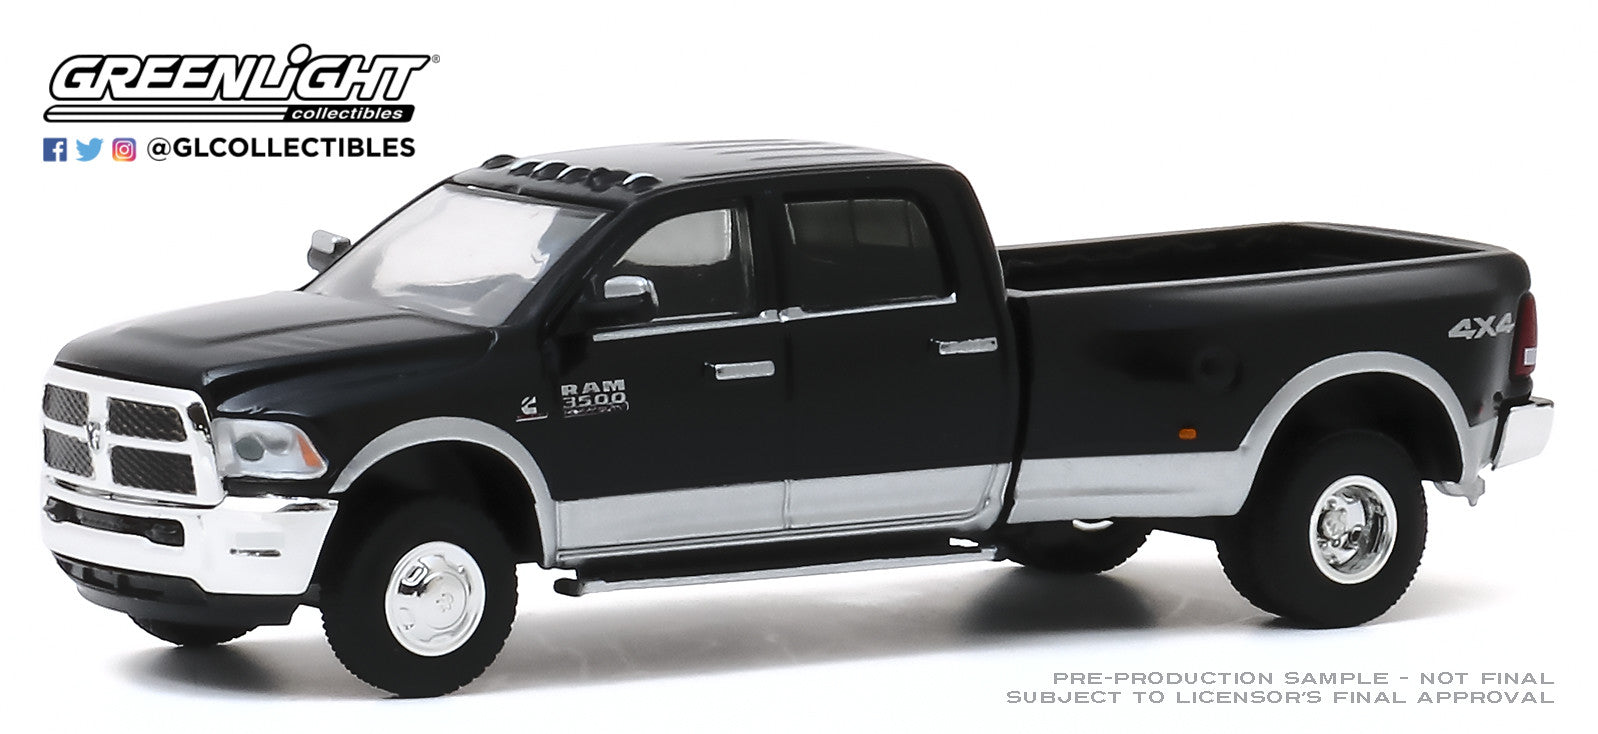 GreenLight 1:64 Dually Drivers Series 4 - 2018 Dodge Ram 3500 Dually - Harvest Edition - Brilliant Black and Bright Silver 46040-E